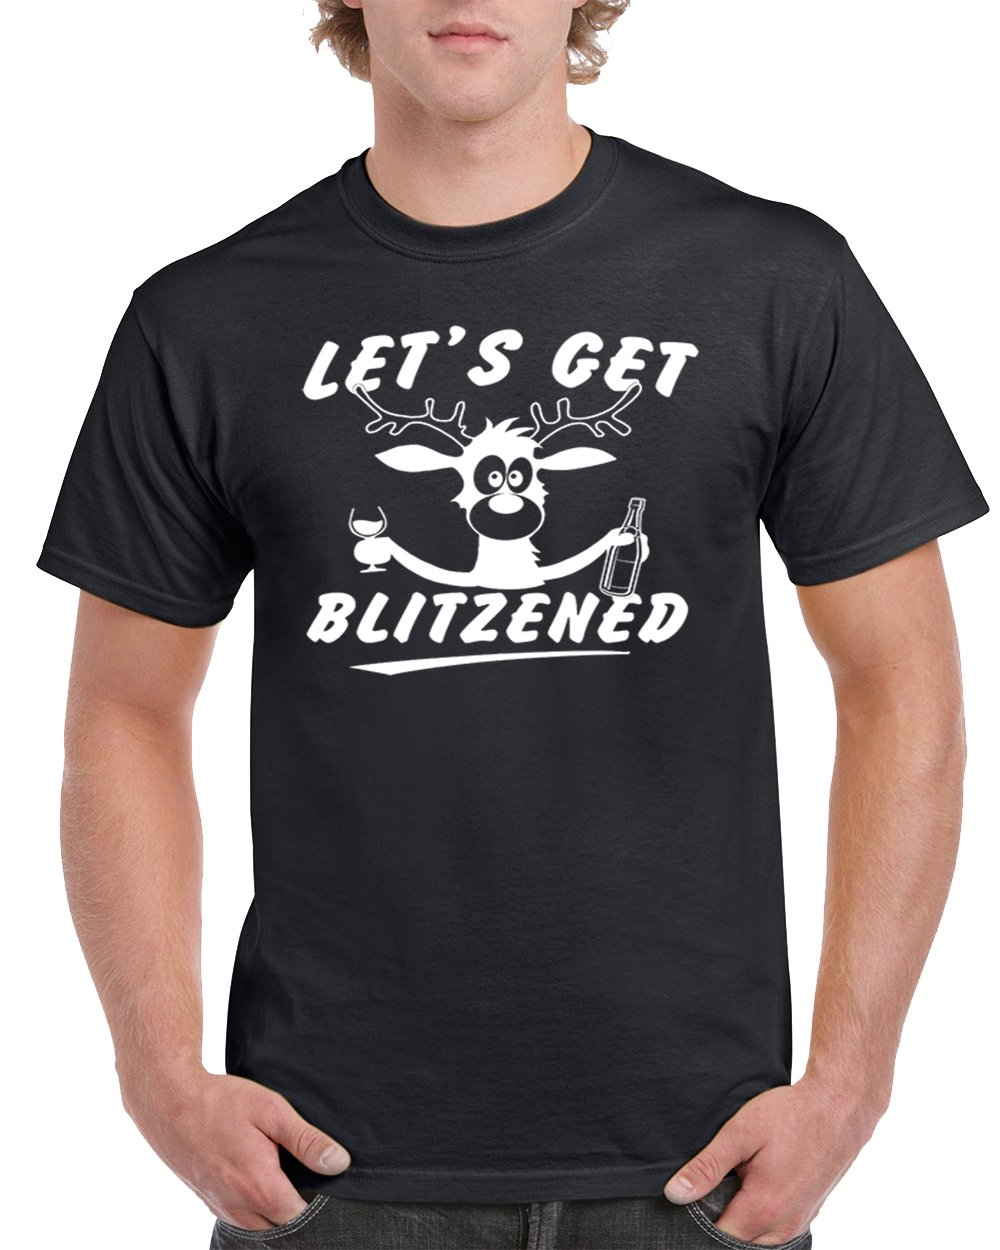 Ugly Christmas Shirts Let's Get Blitzened Men's T-Shirts Crew Neck Tee Shirts For Men(Black,Medium)